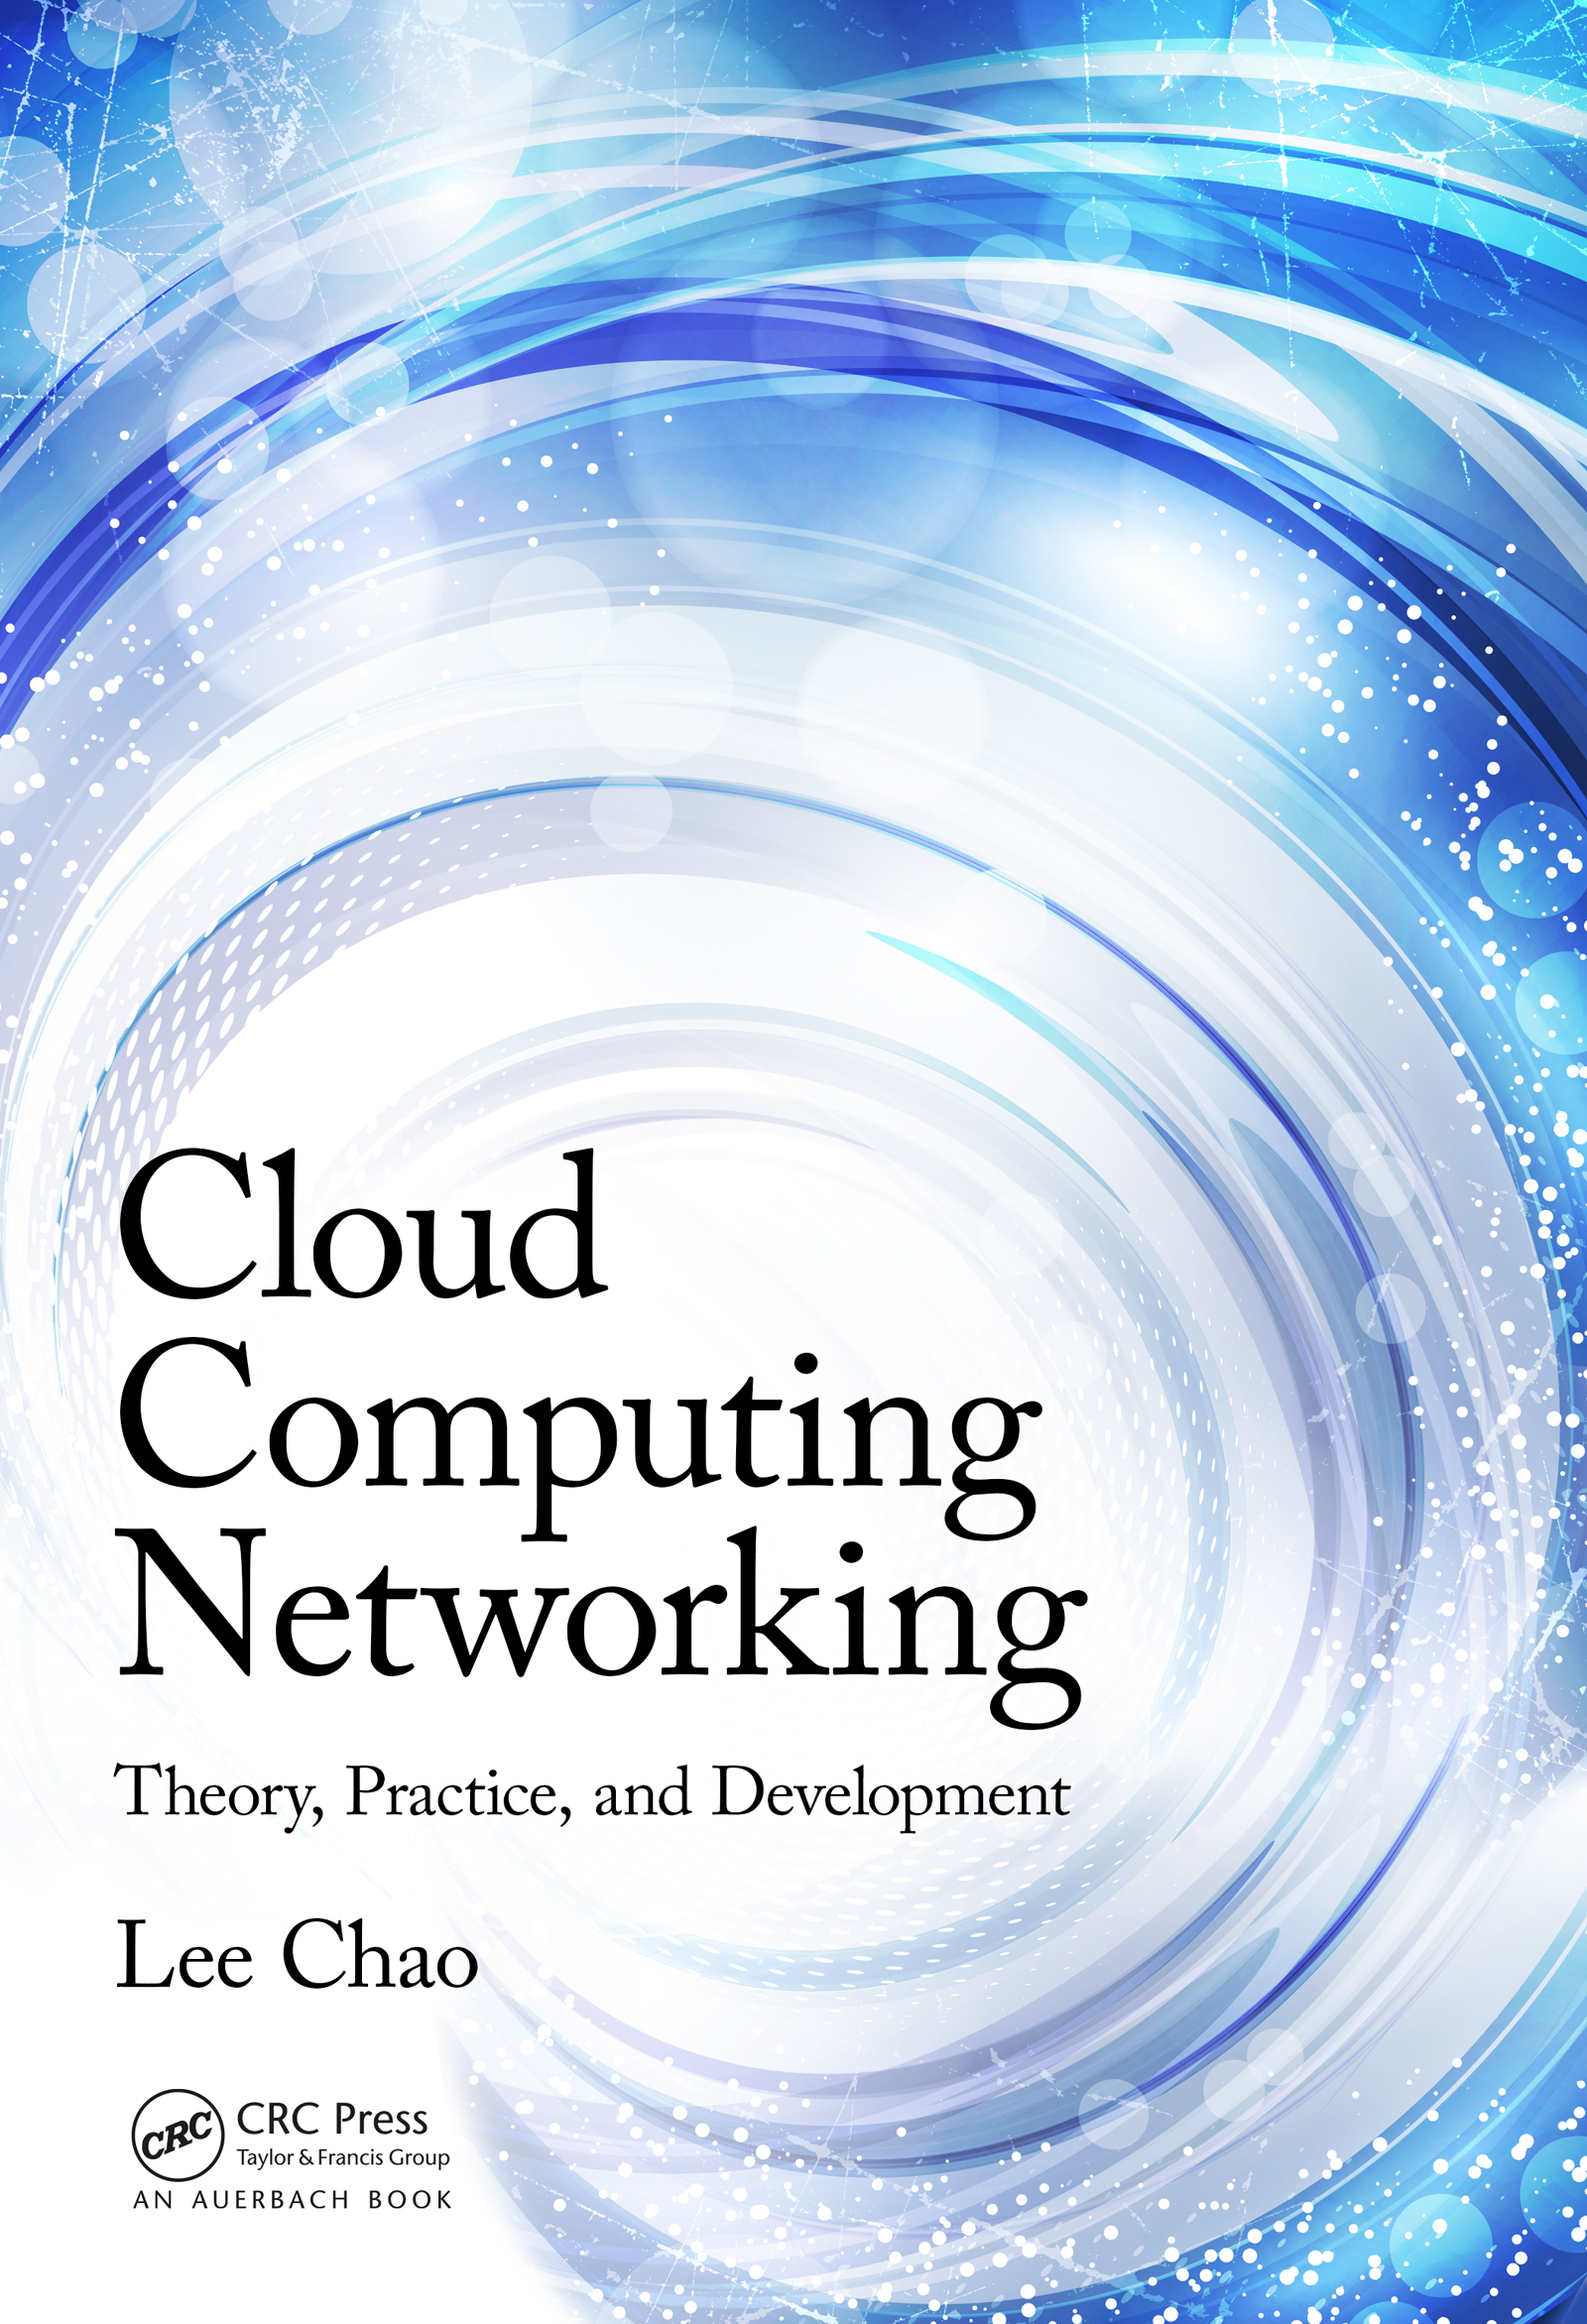 Download Ebook Cloud Computing Networking by Lee Chao Pdf